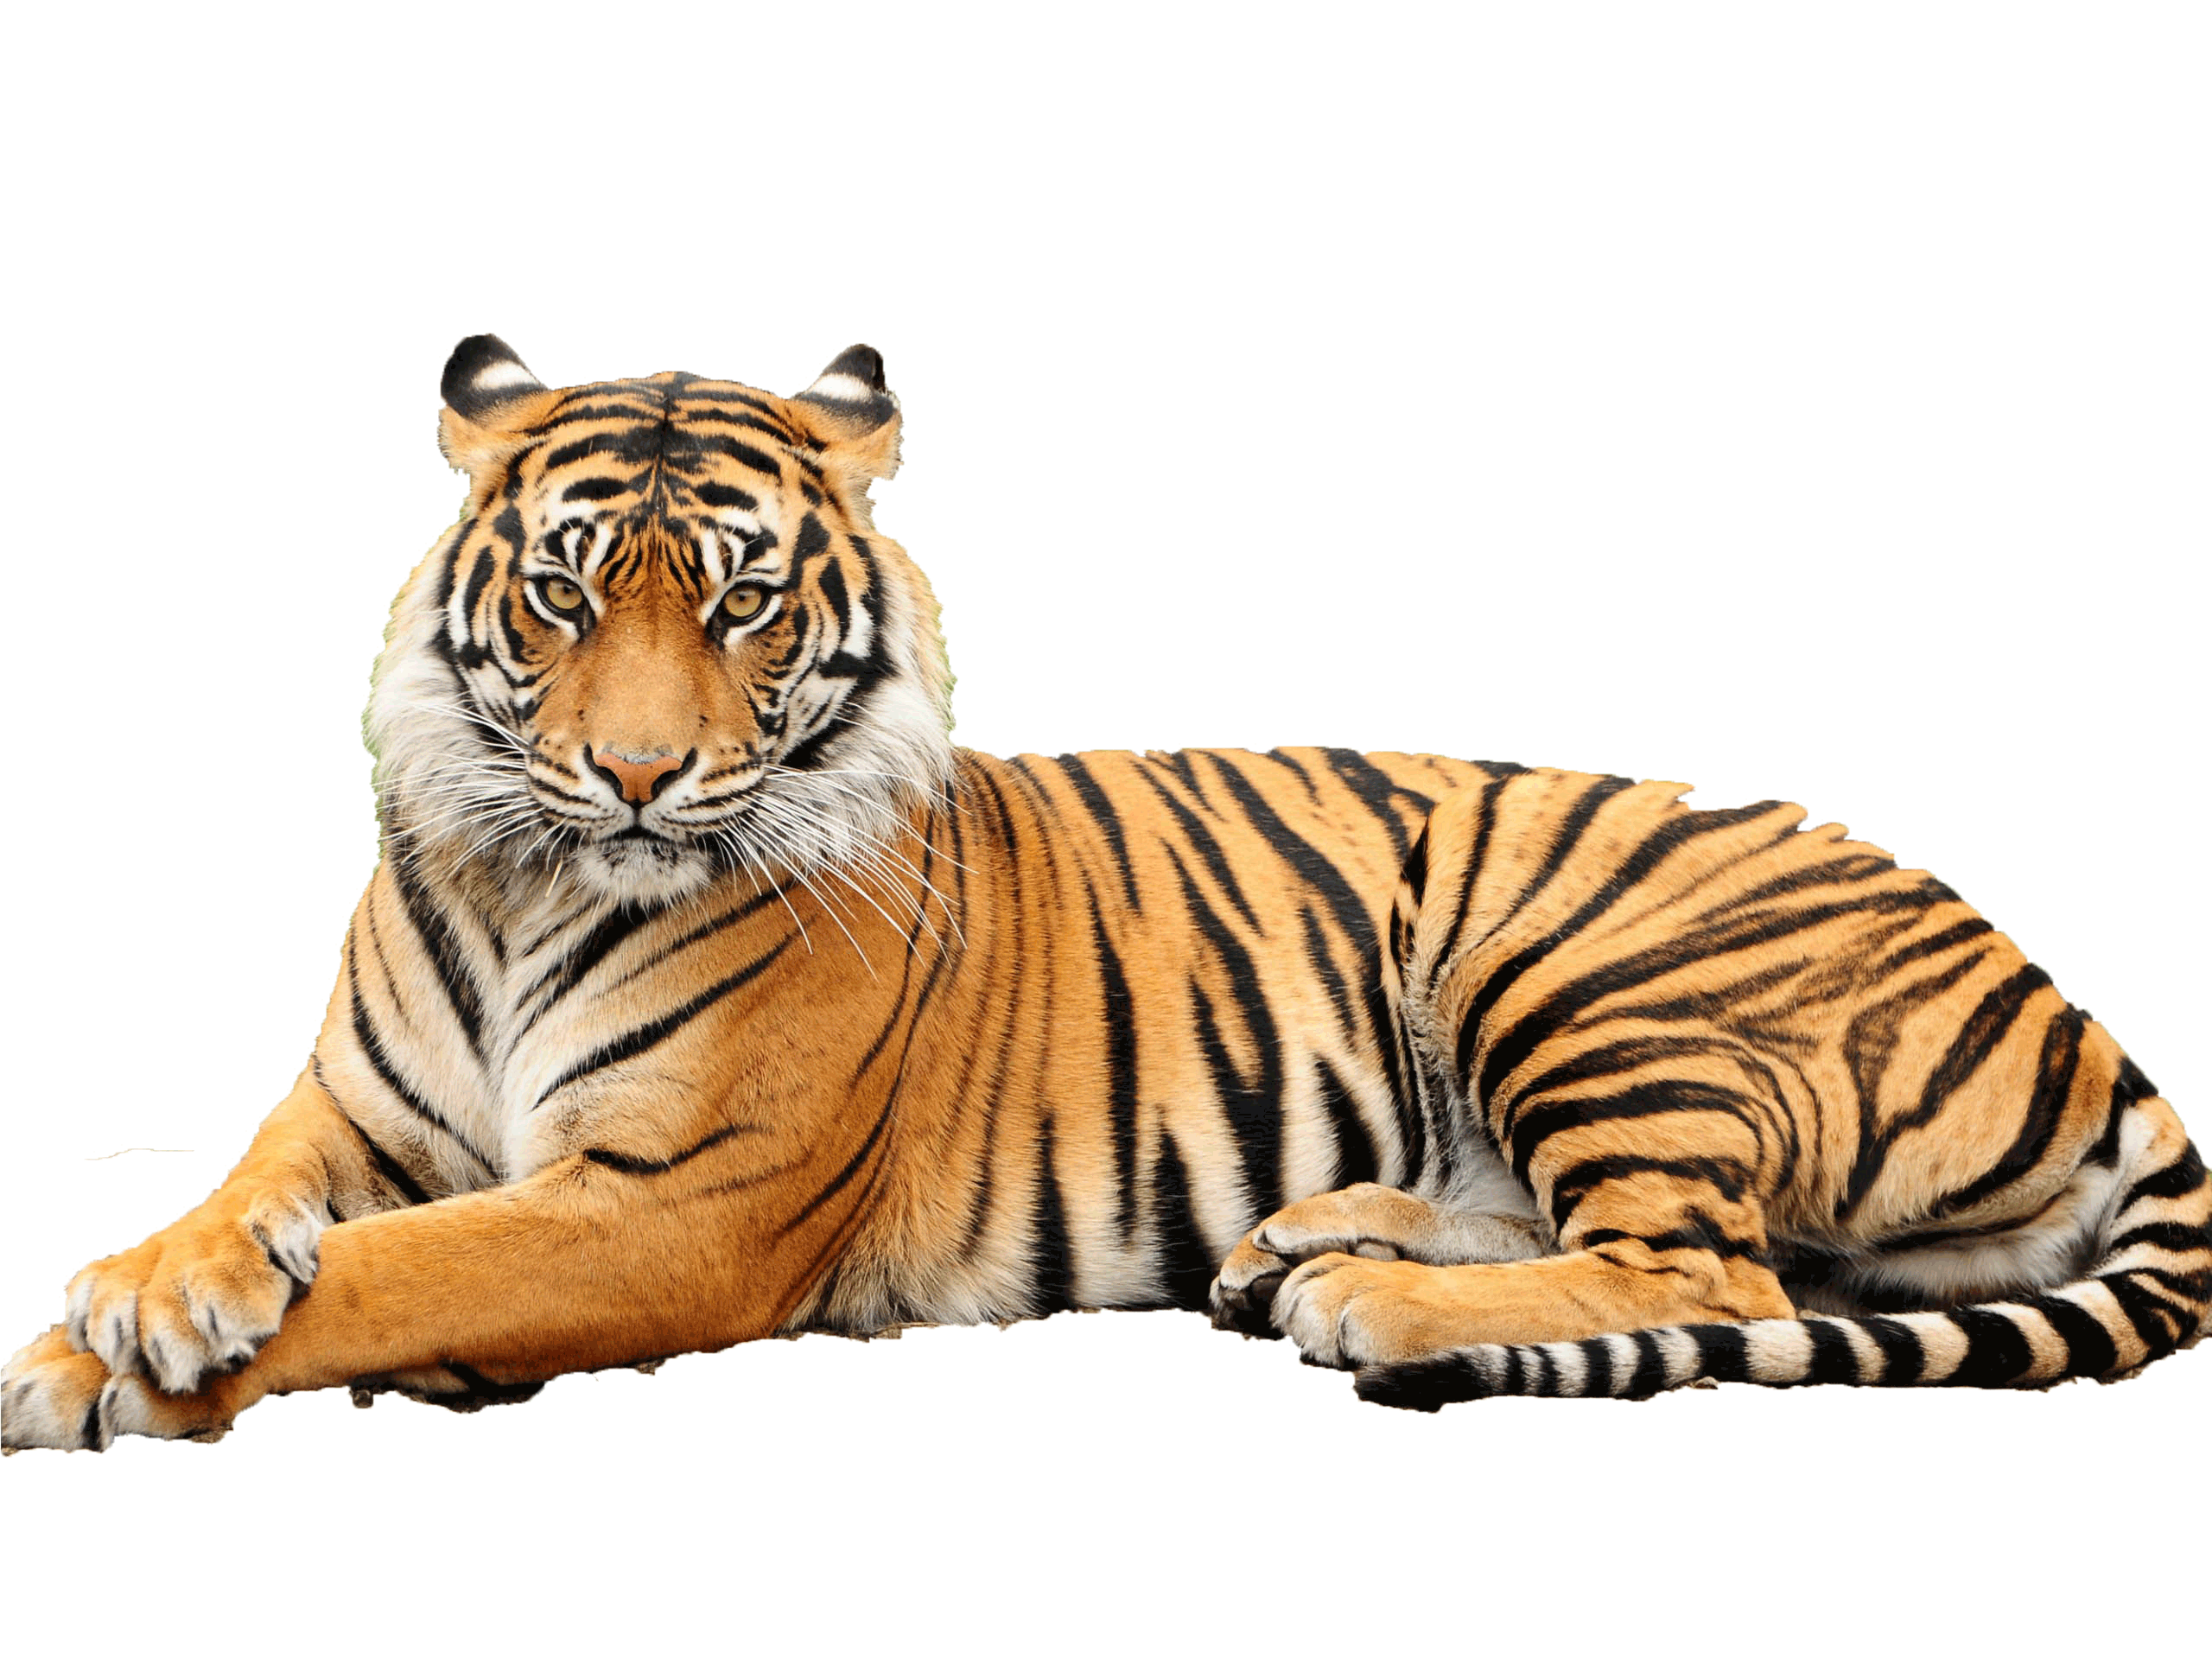 Get Tiger Png Pictures image #39177